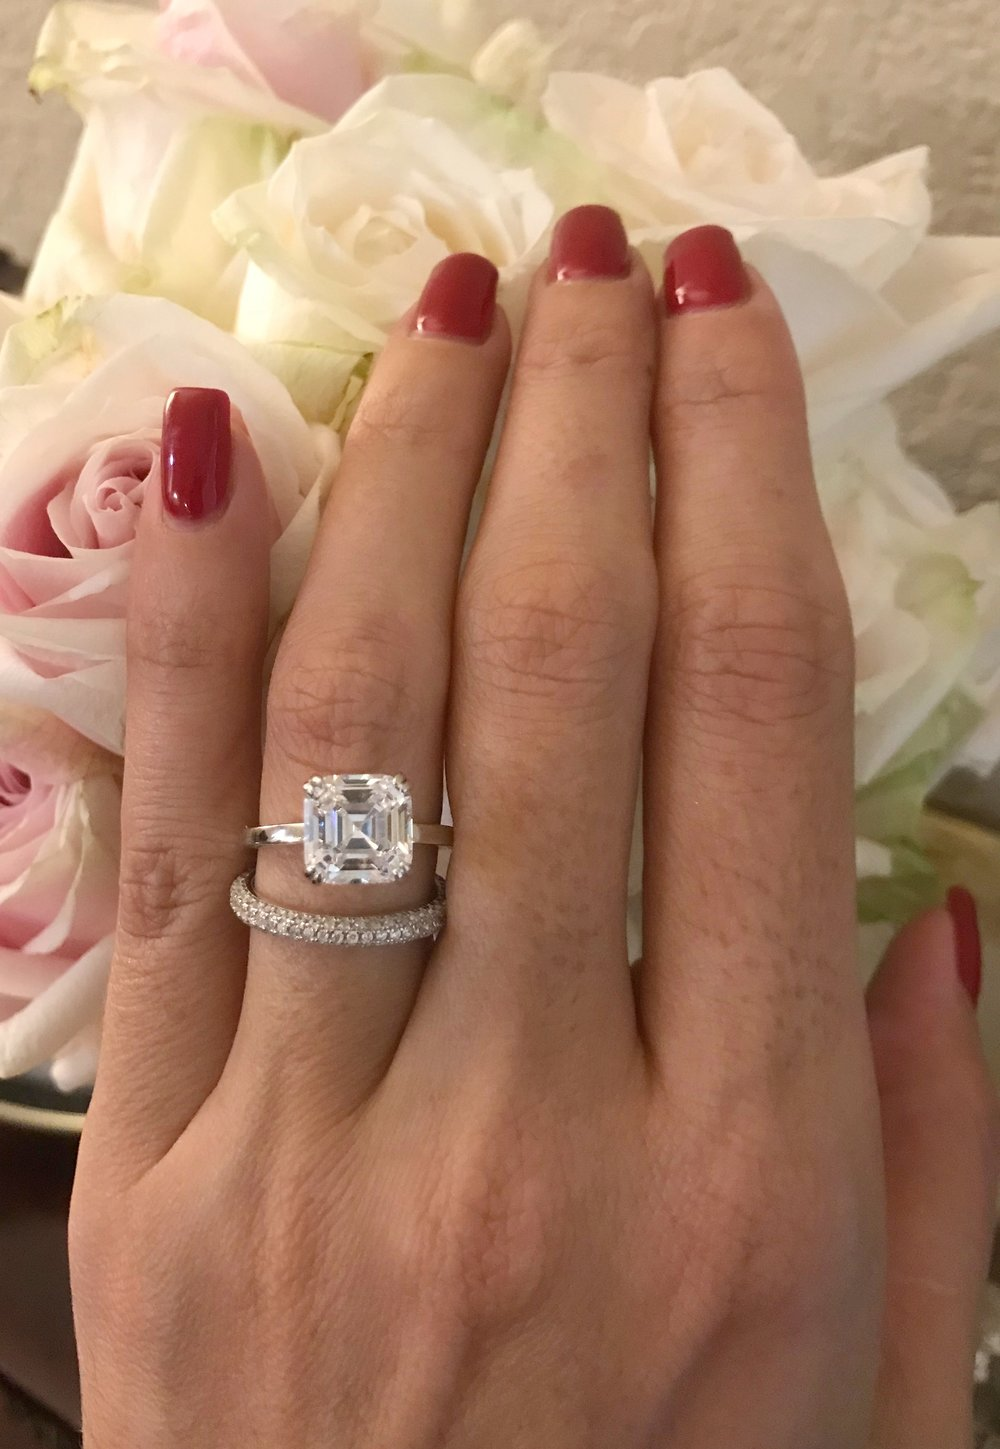 Simulated diamond engagement ring for travel.  Created by Everly Rings.